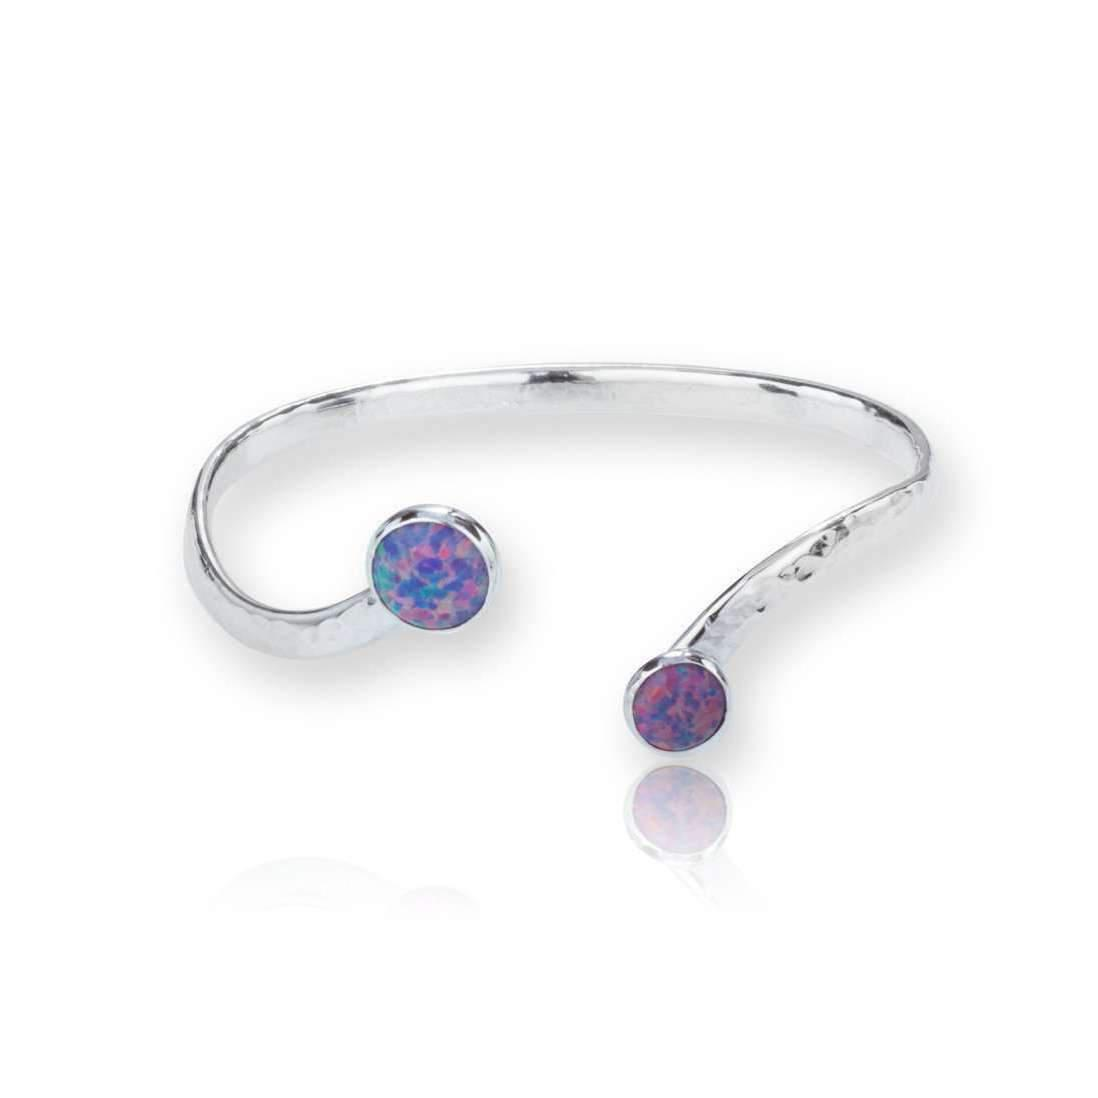 Lavan Sterling Silver Opal Bangle Set With 6 Mm Stones QXH7mE